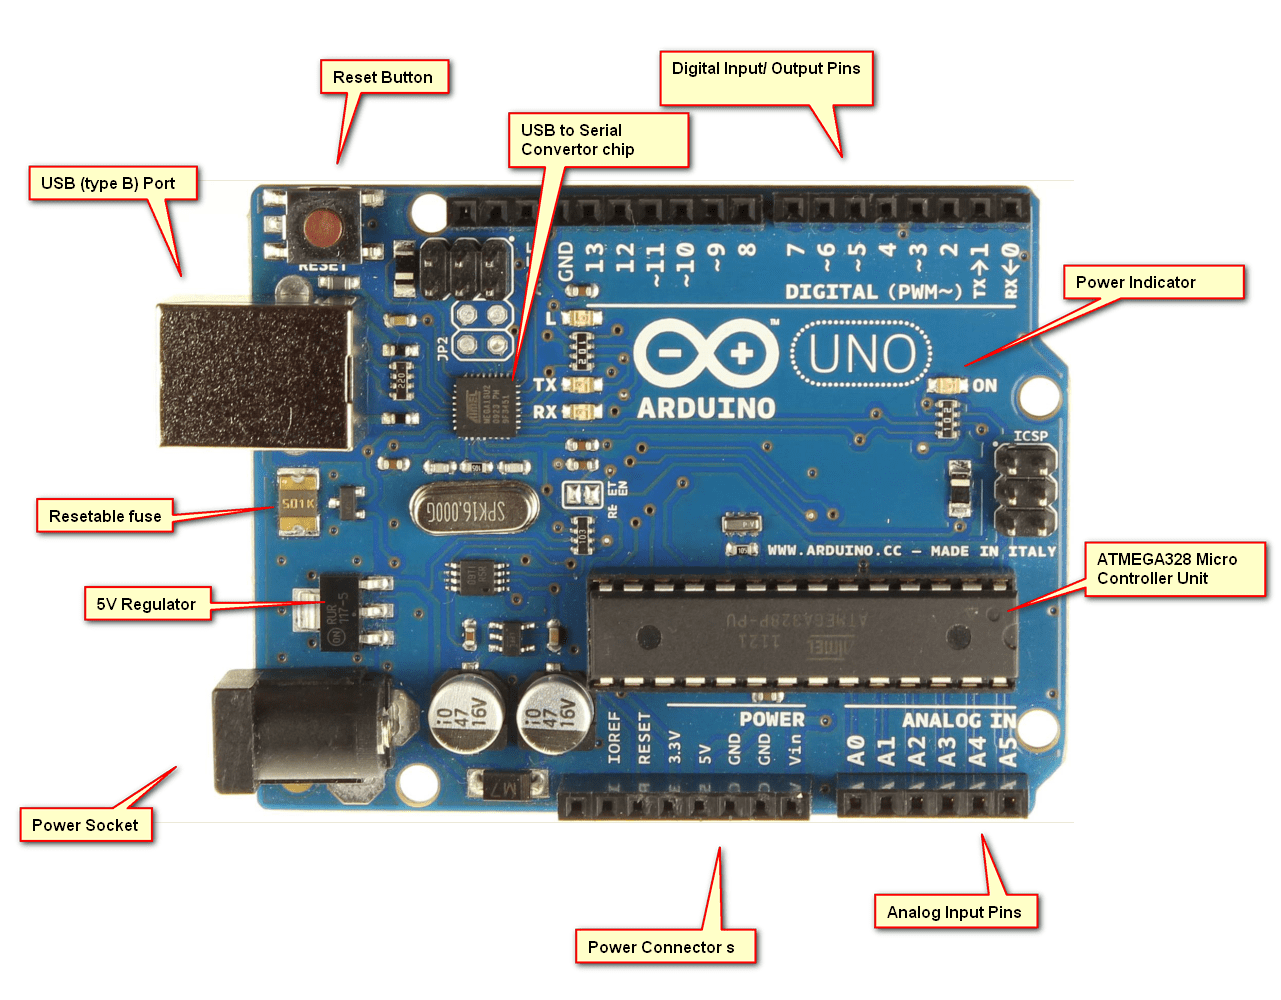 hight resolution of if you want to purchase an original arduino board visit the arduino web store https store arduino cc or you can also purchase on amazon currently at